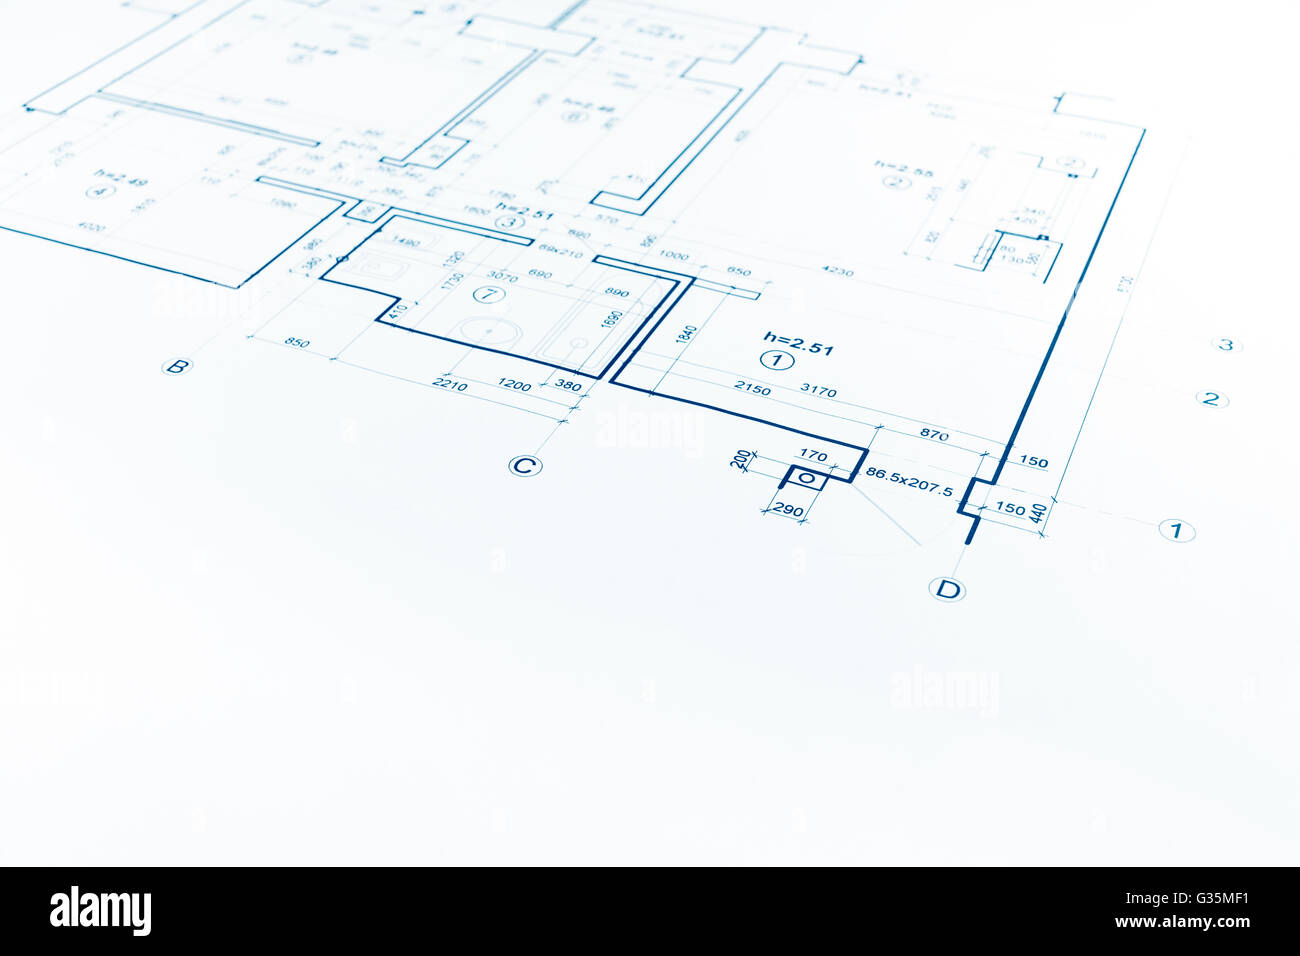 Architectural background with floor plan blueprint technical architectural background with floor plan blueprint technical drawing malvernweather Image collections